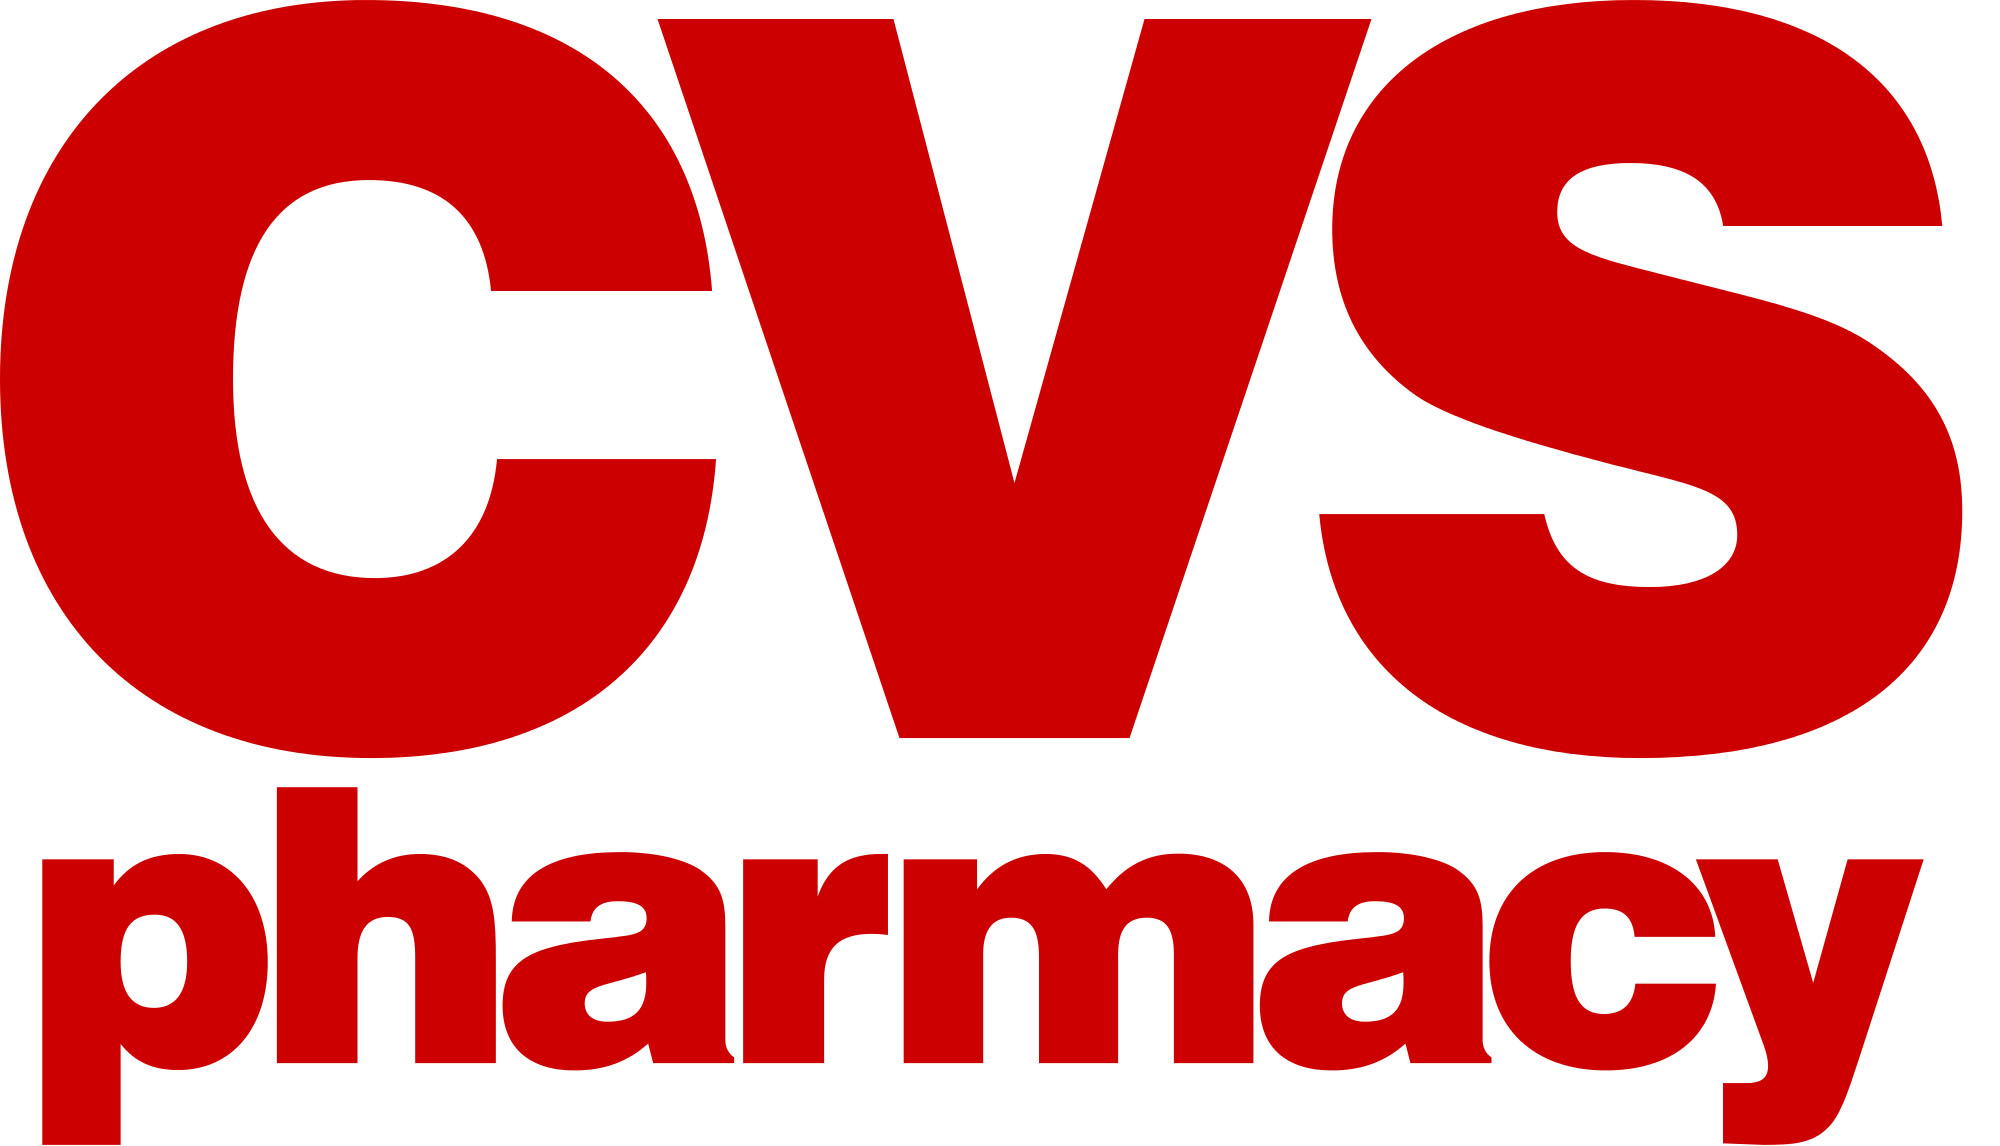 CVS_Pharmacy_Alt_Logo